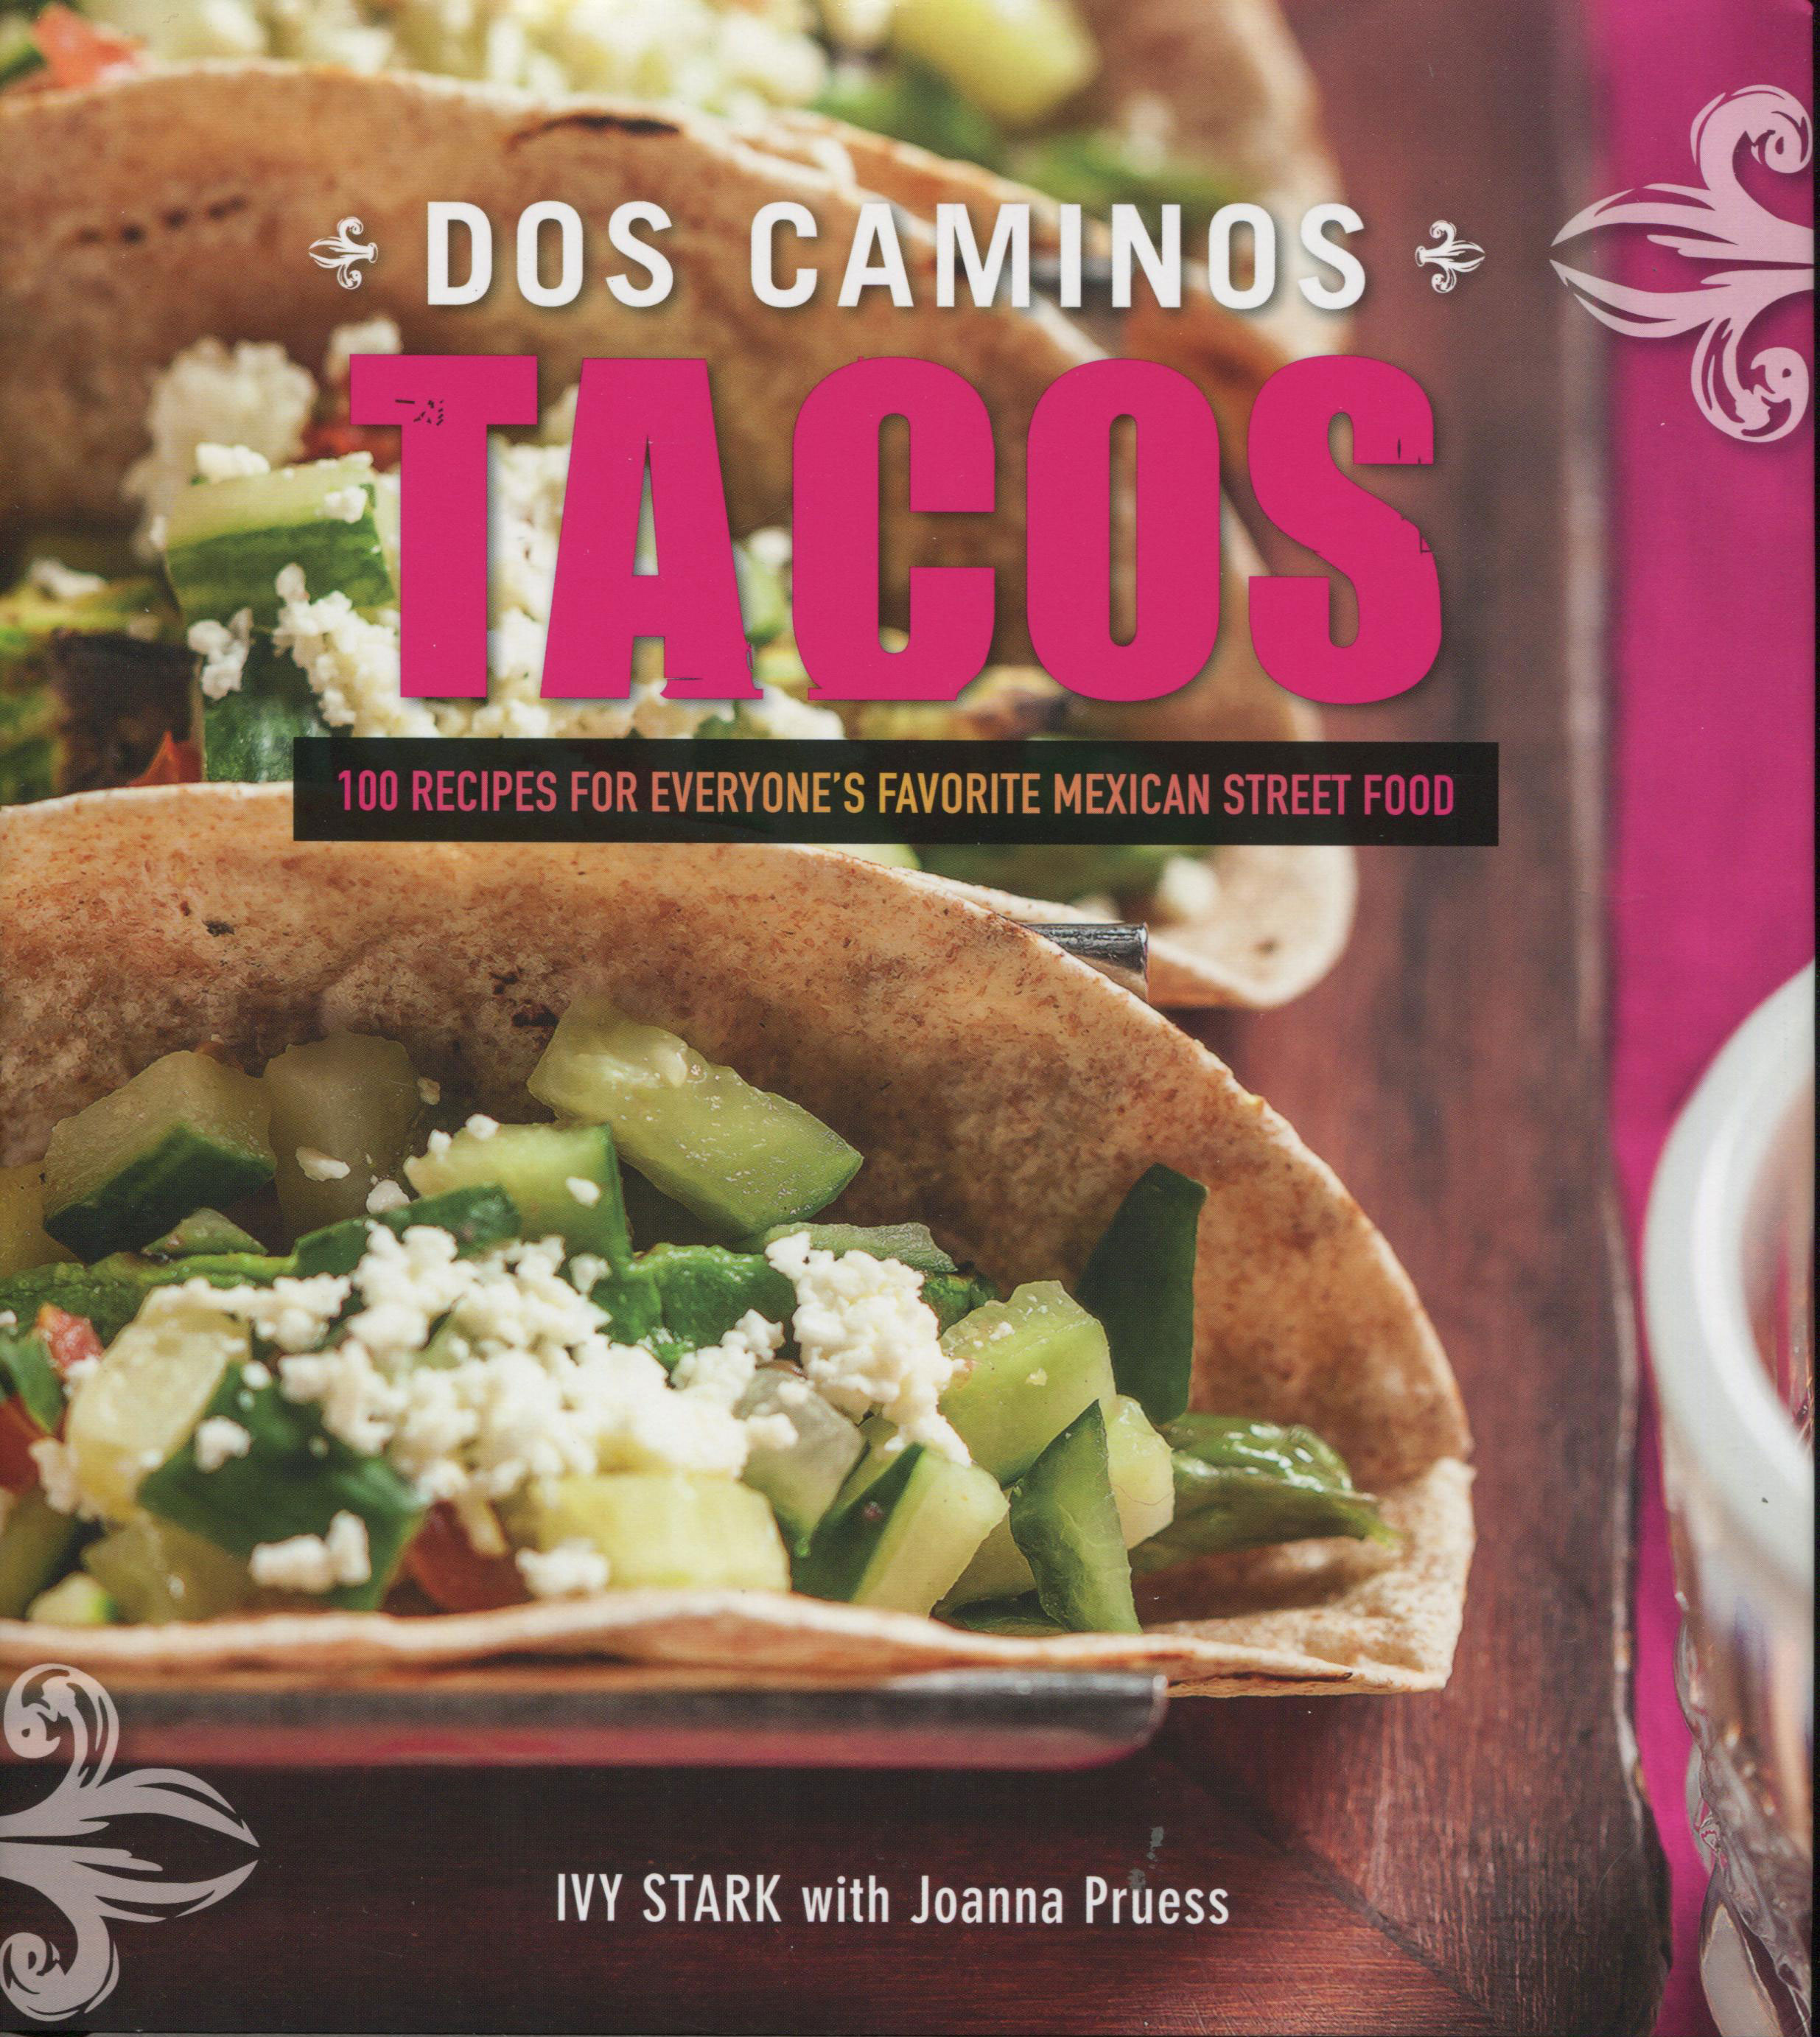 Fiery Cookbook Review: Dos Caminos Tacos